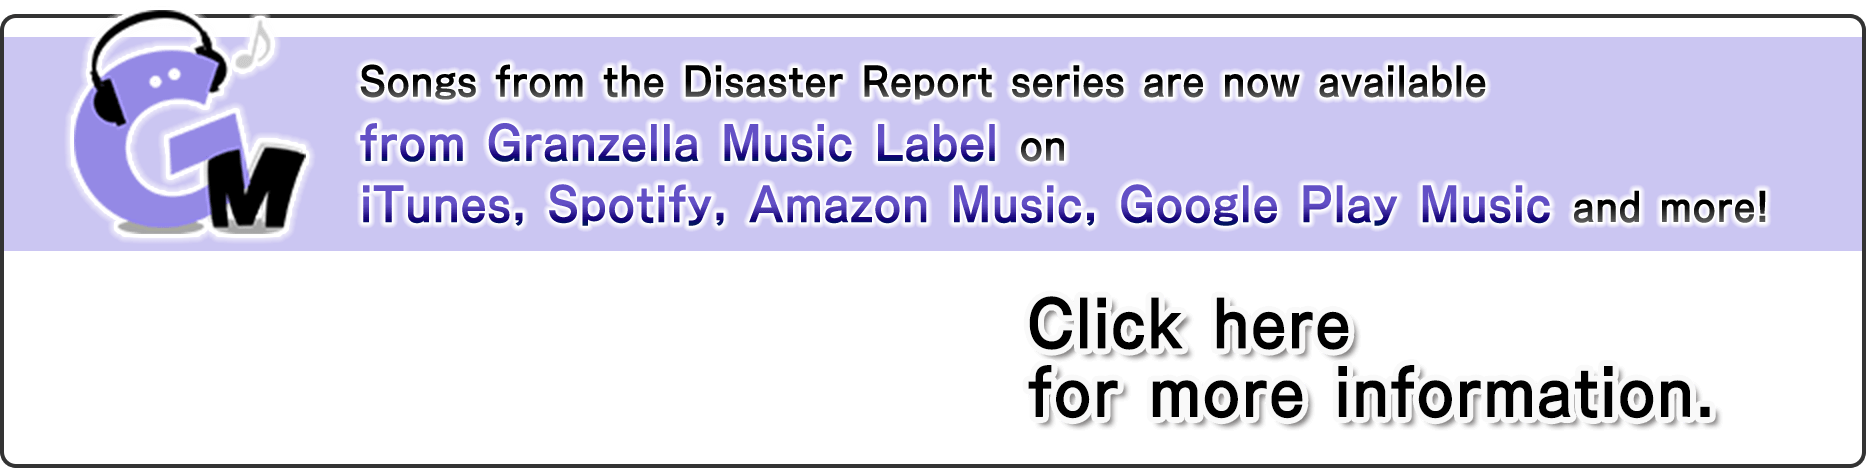 Songs from the Disaster Report series are now available from Granzella Music Label on iTunes, Spotify, GooglePlay Music and more!